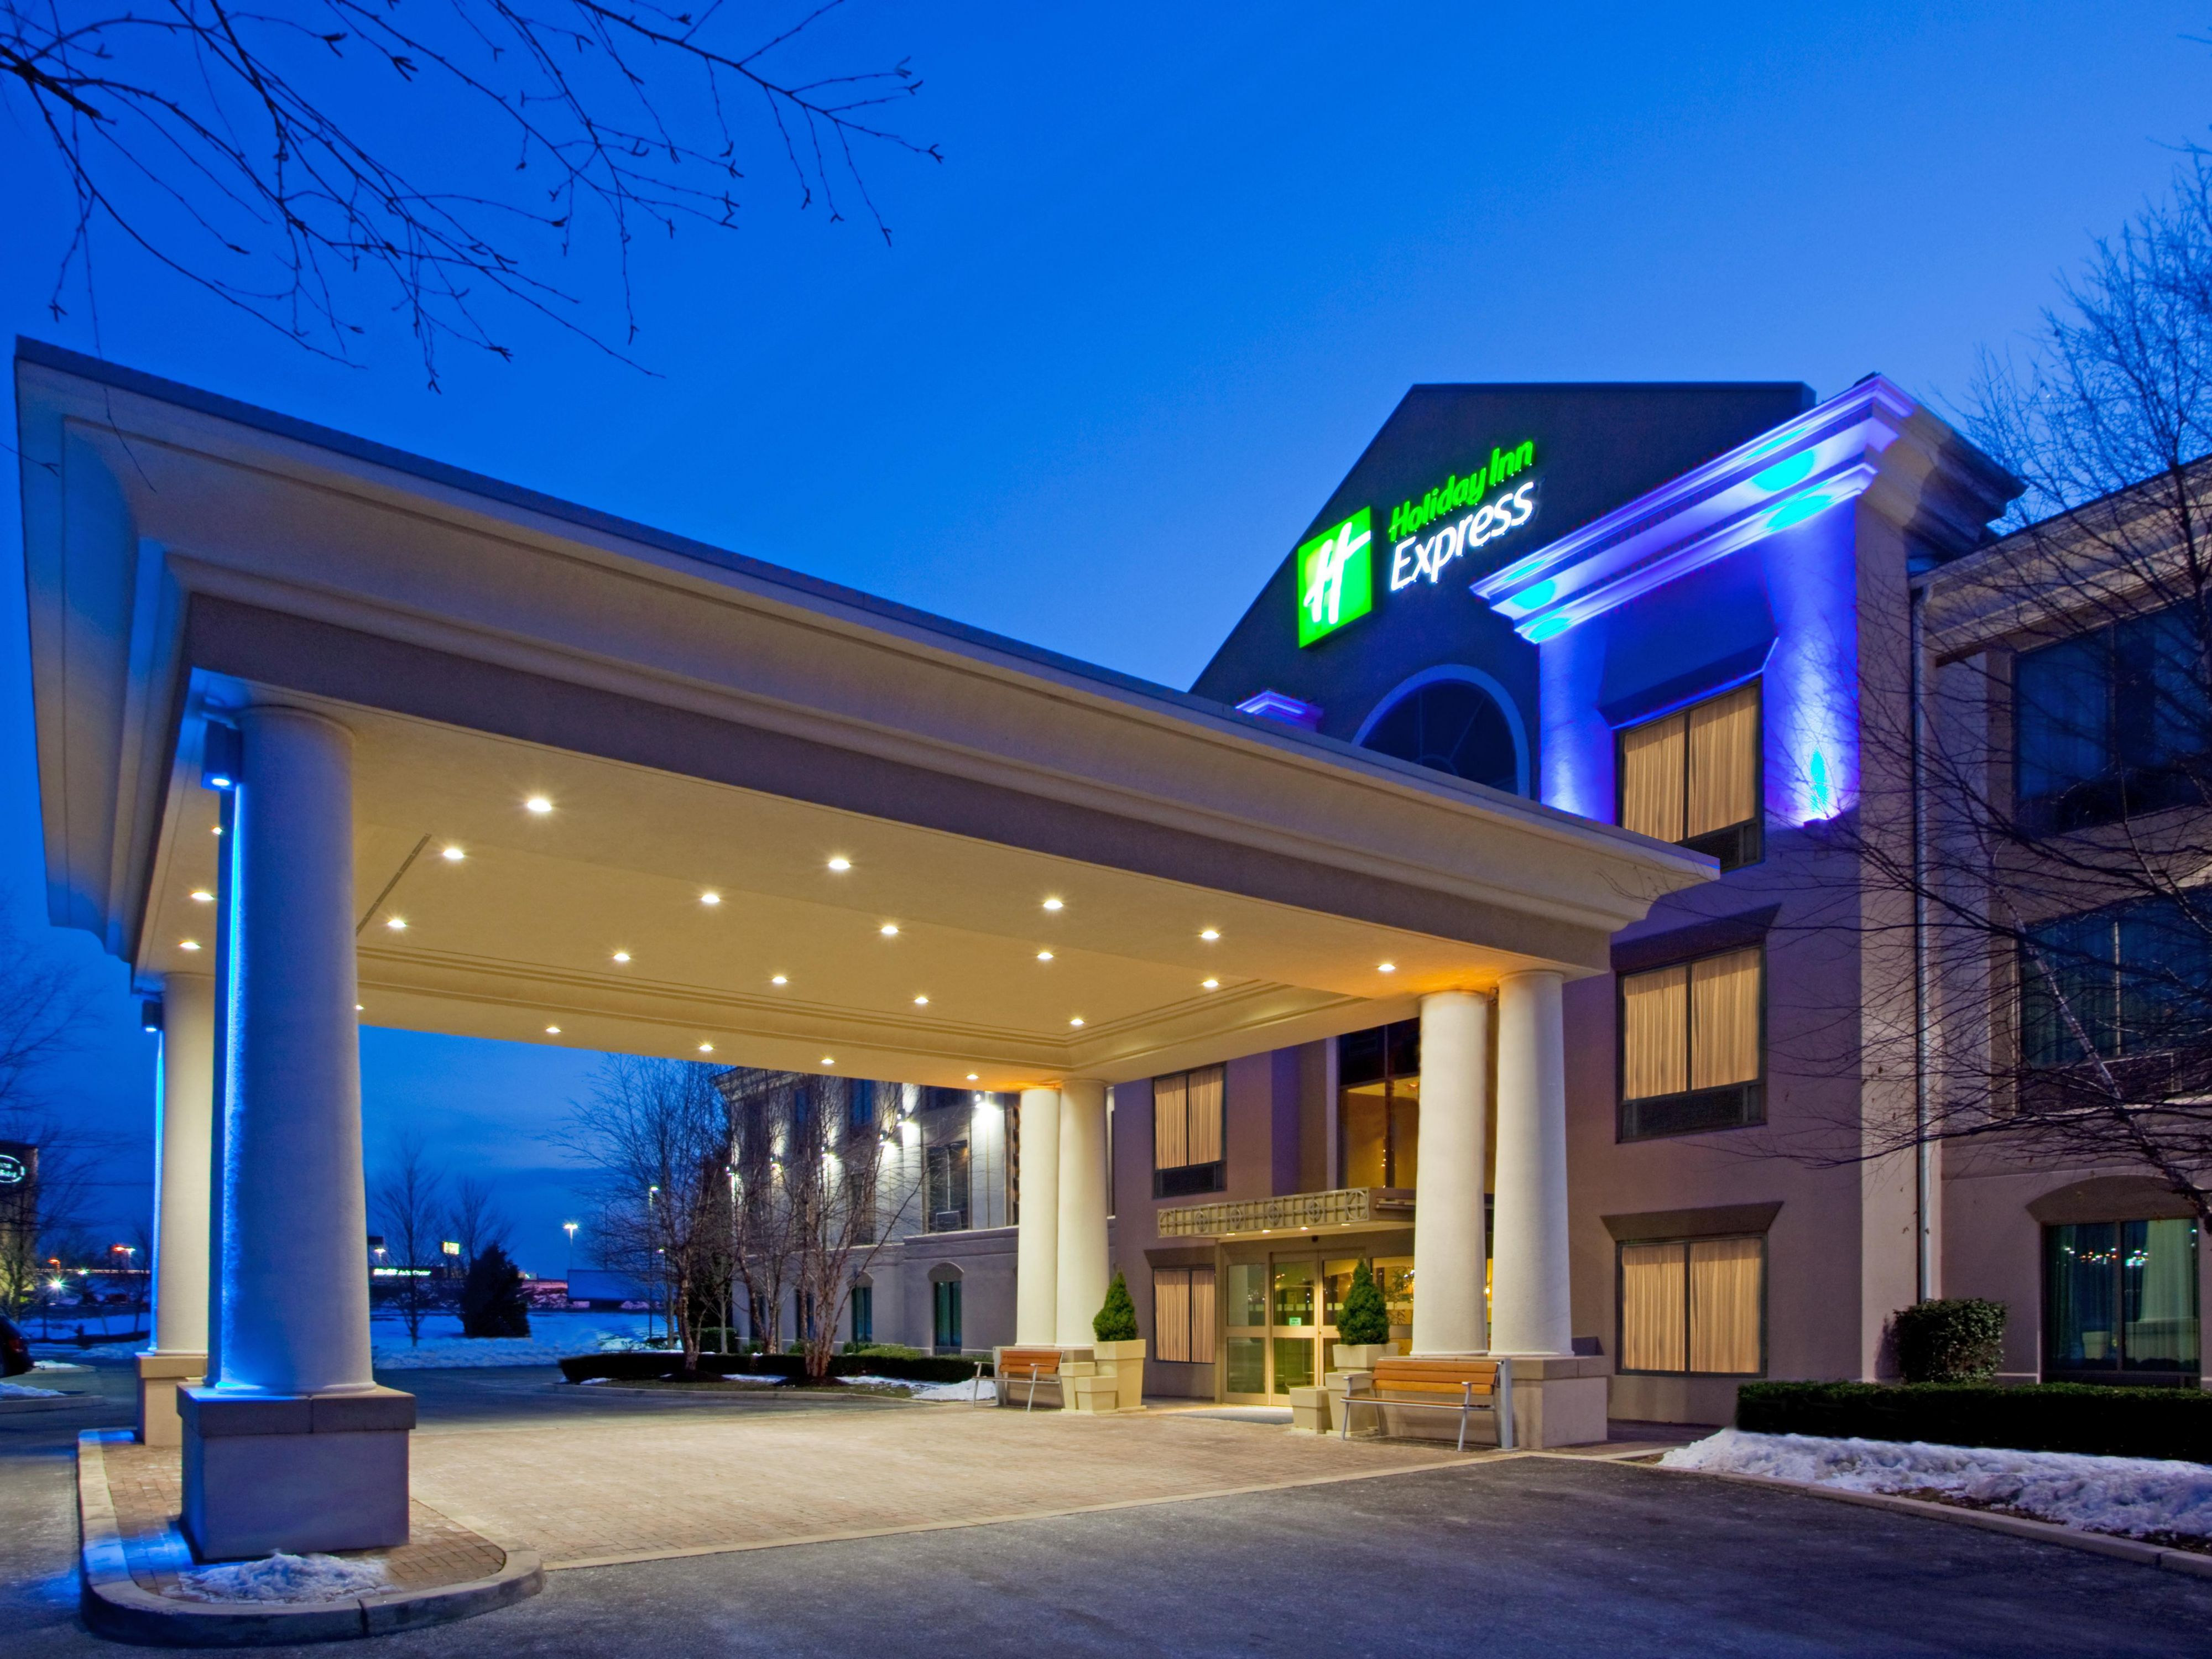 Hotel Entrance of the Holiday Inn Express and Suites Hagerstown